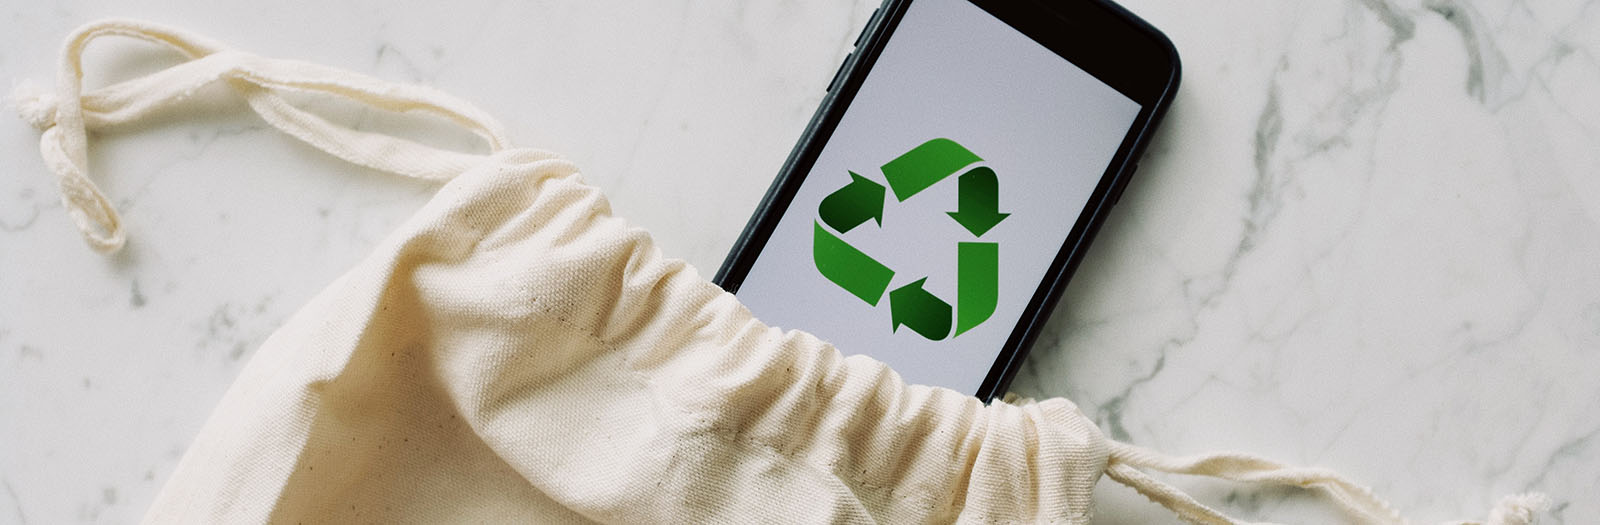 photo of a cell phone with a recycling logo placed within a reusable bag